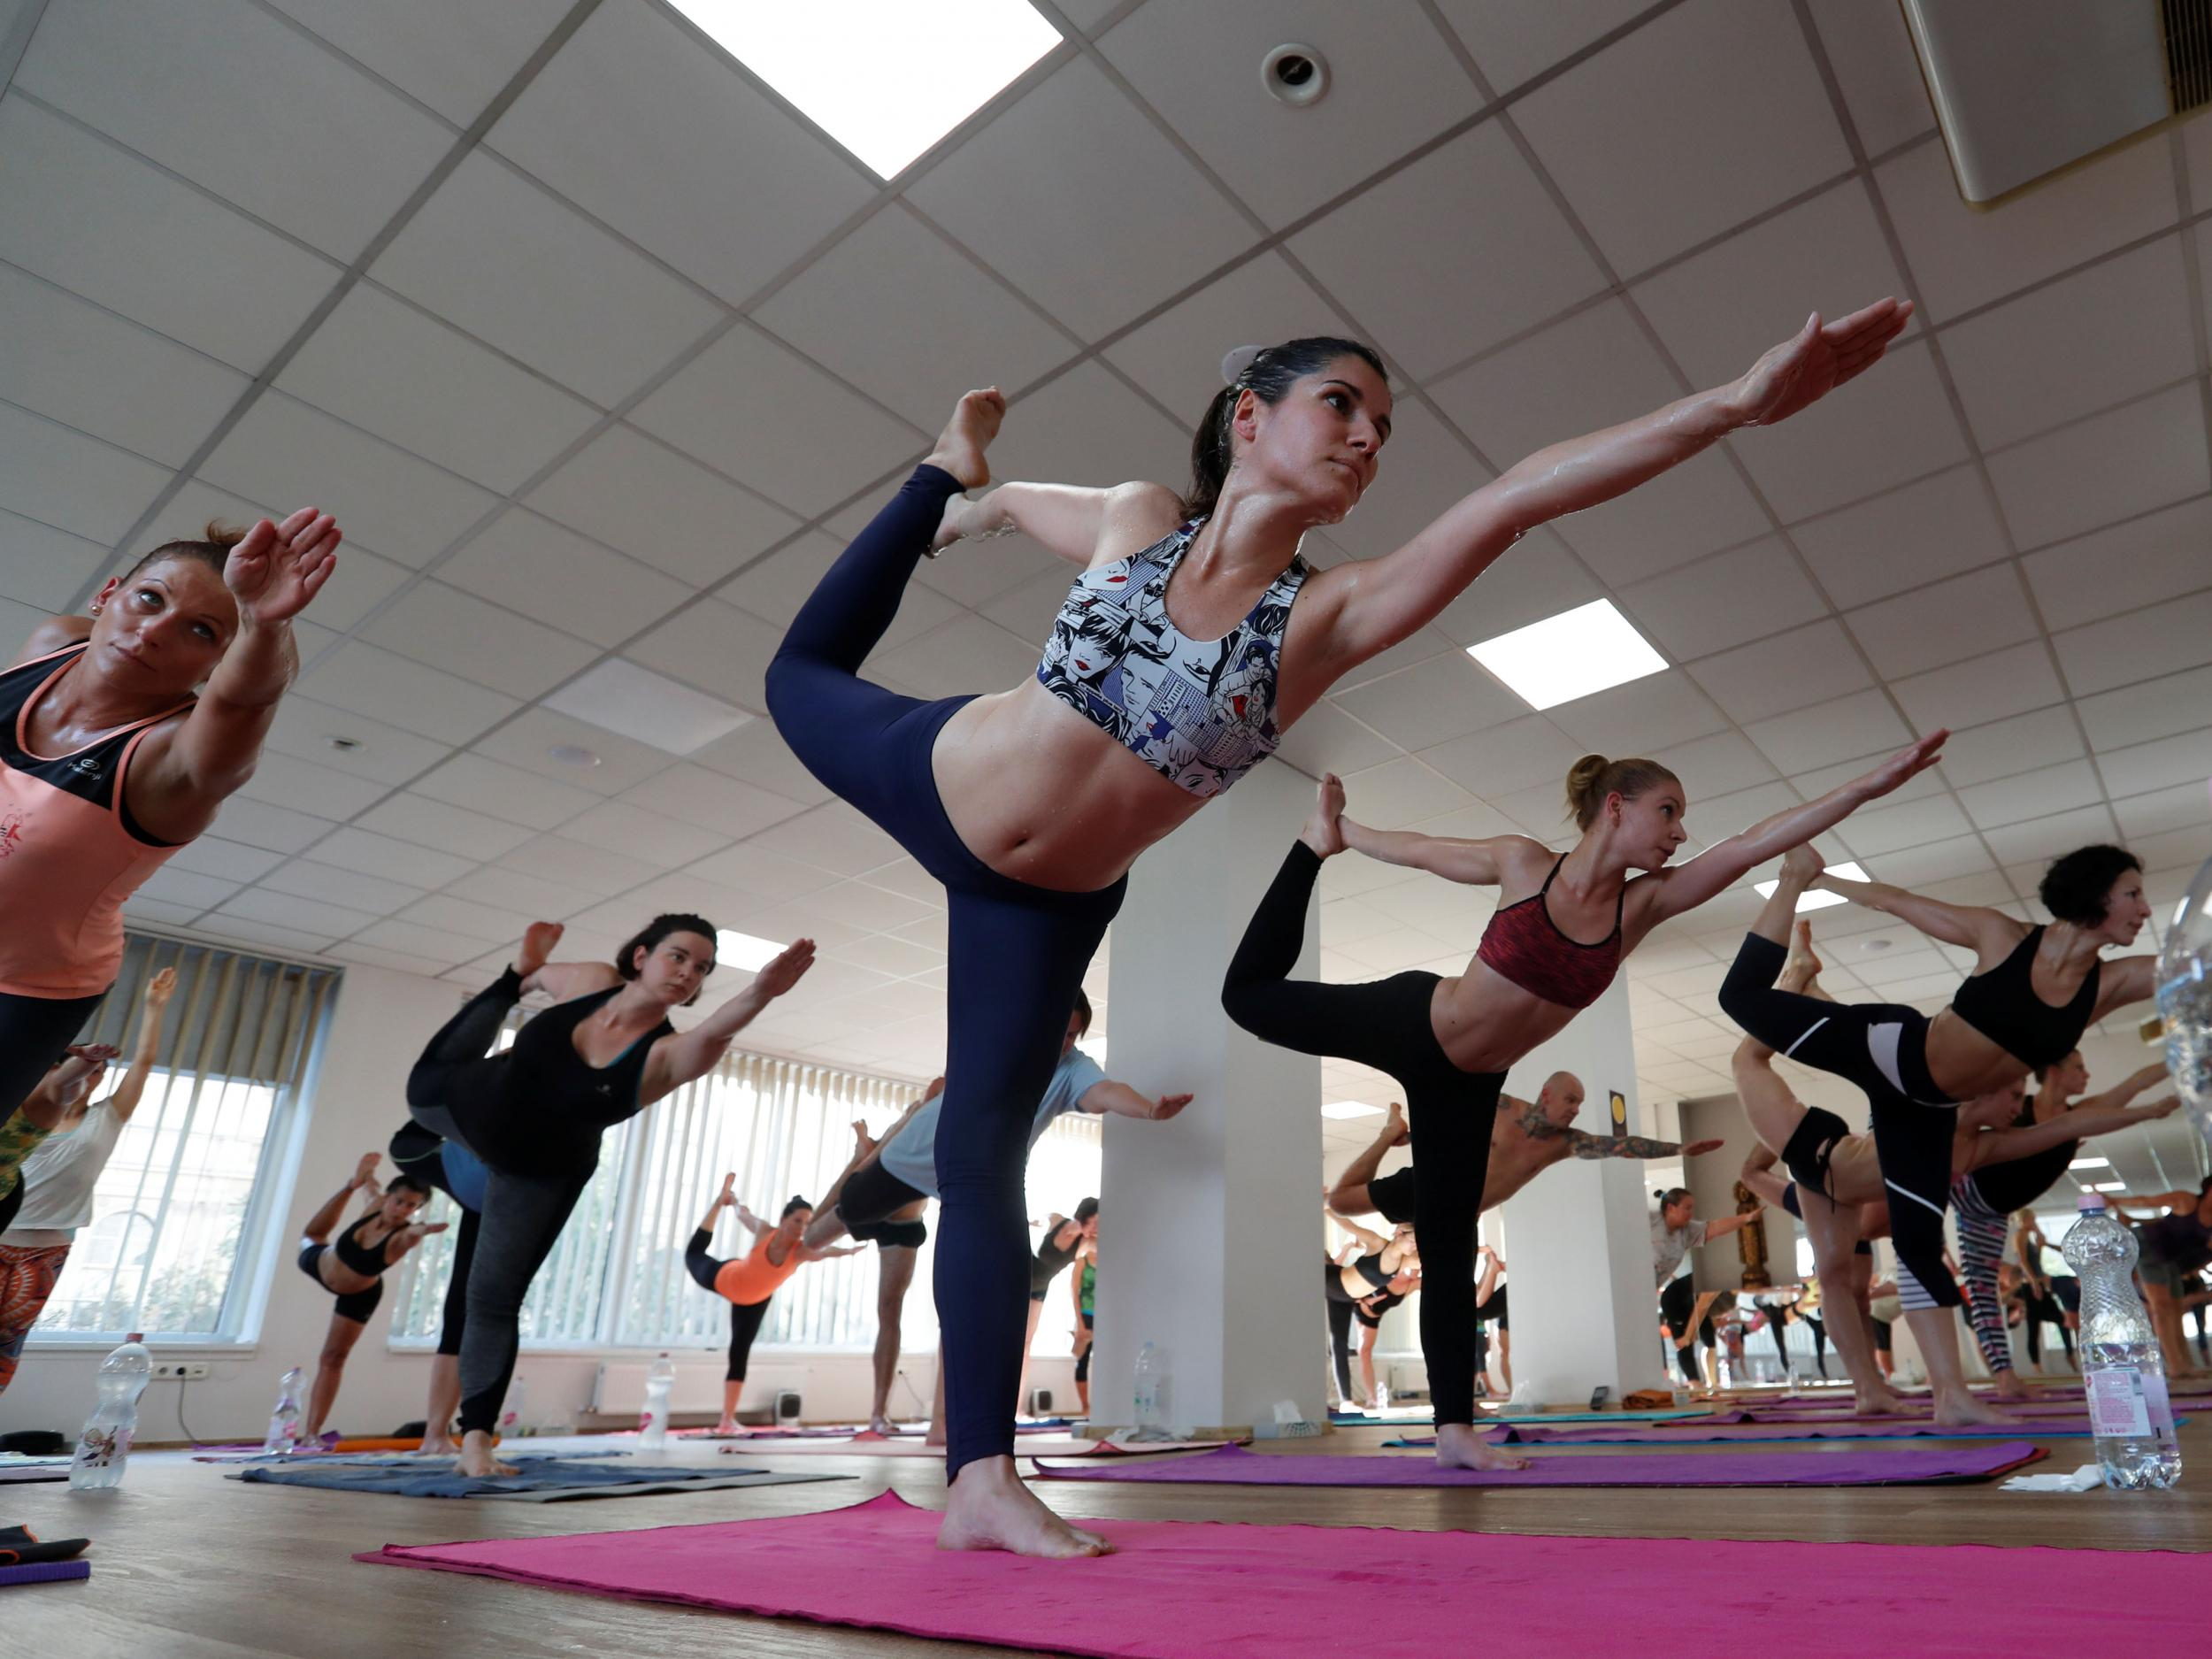 Bikram yoga 'no more effective at improving heart health than yoga practiced at room temperature'